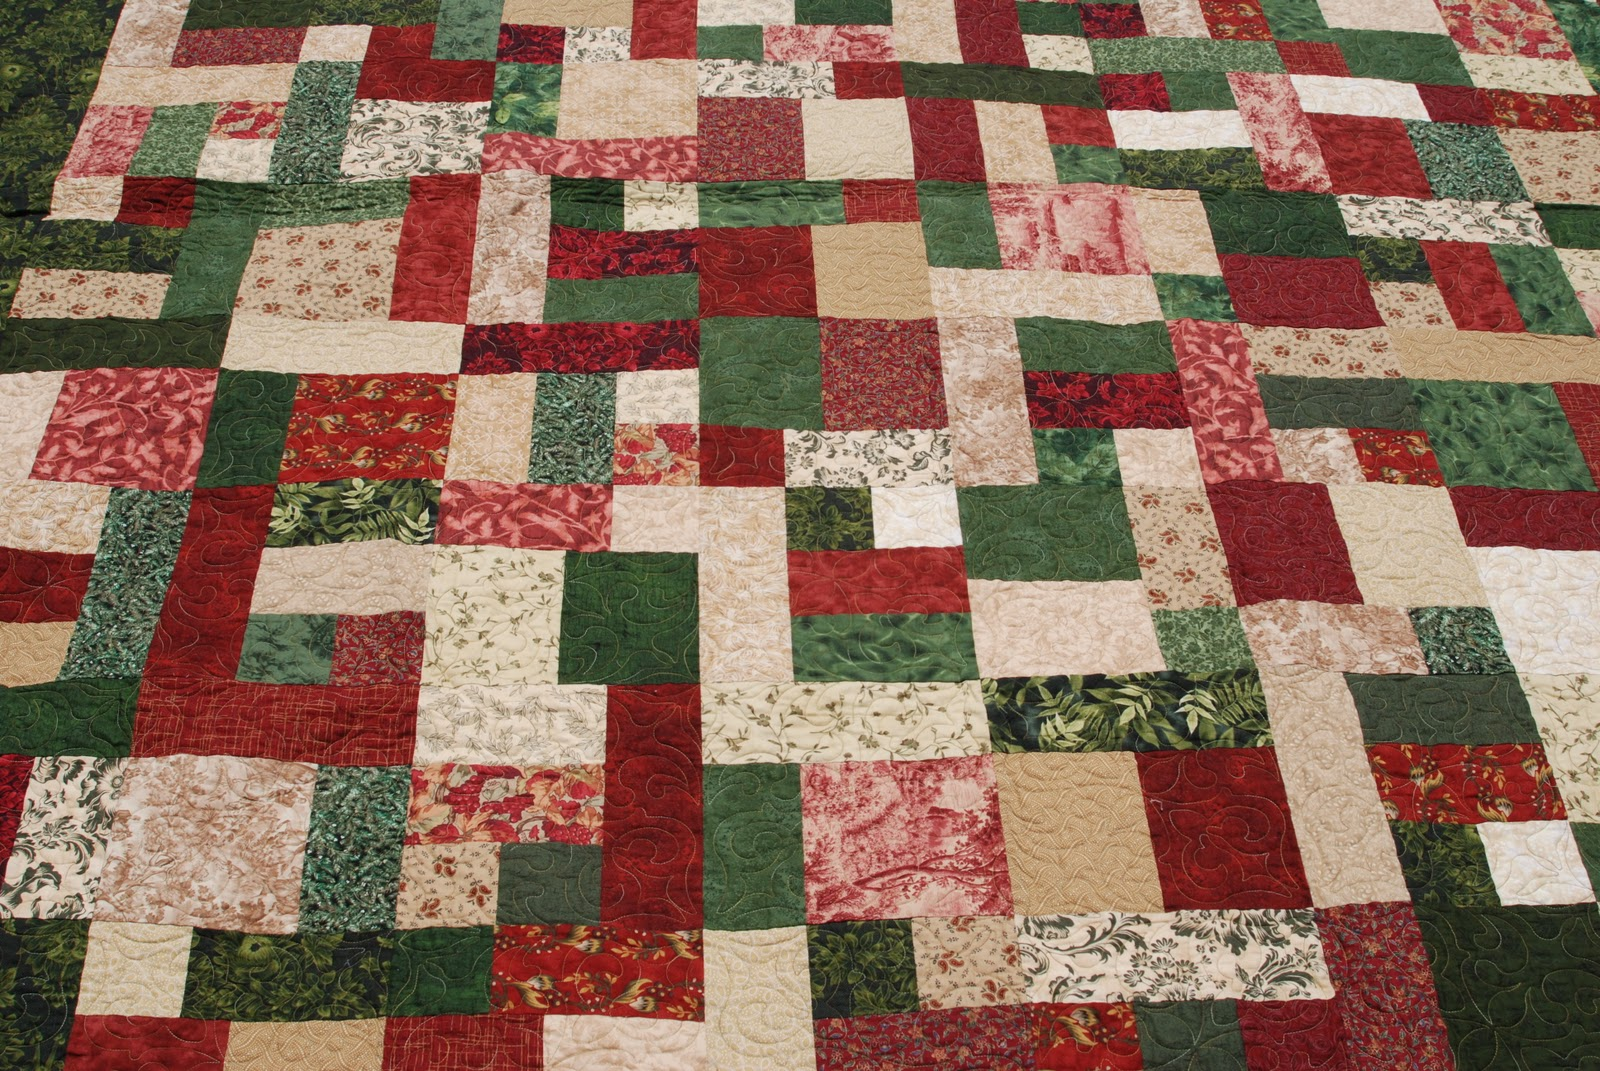 Personal Quilts - Ormond Beach Quilts : road quilt pattern - Adamdwight.com